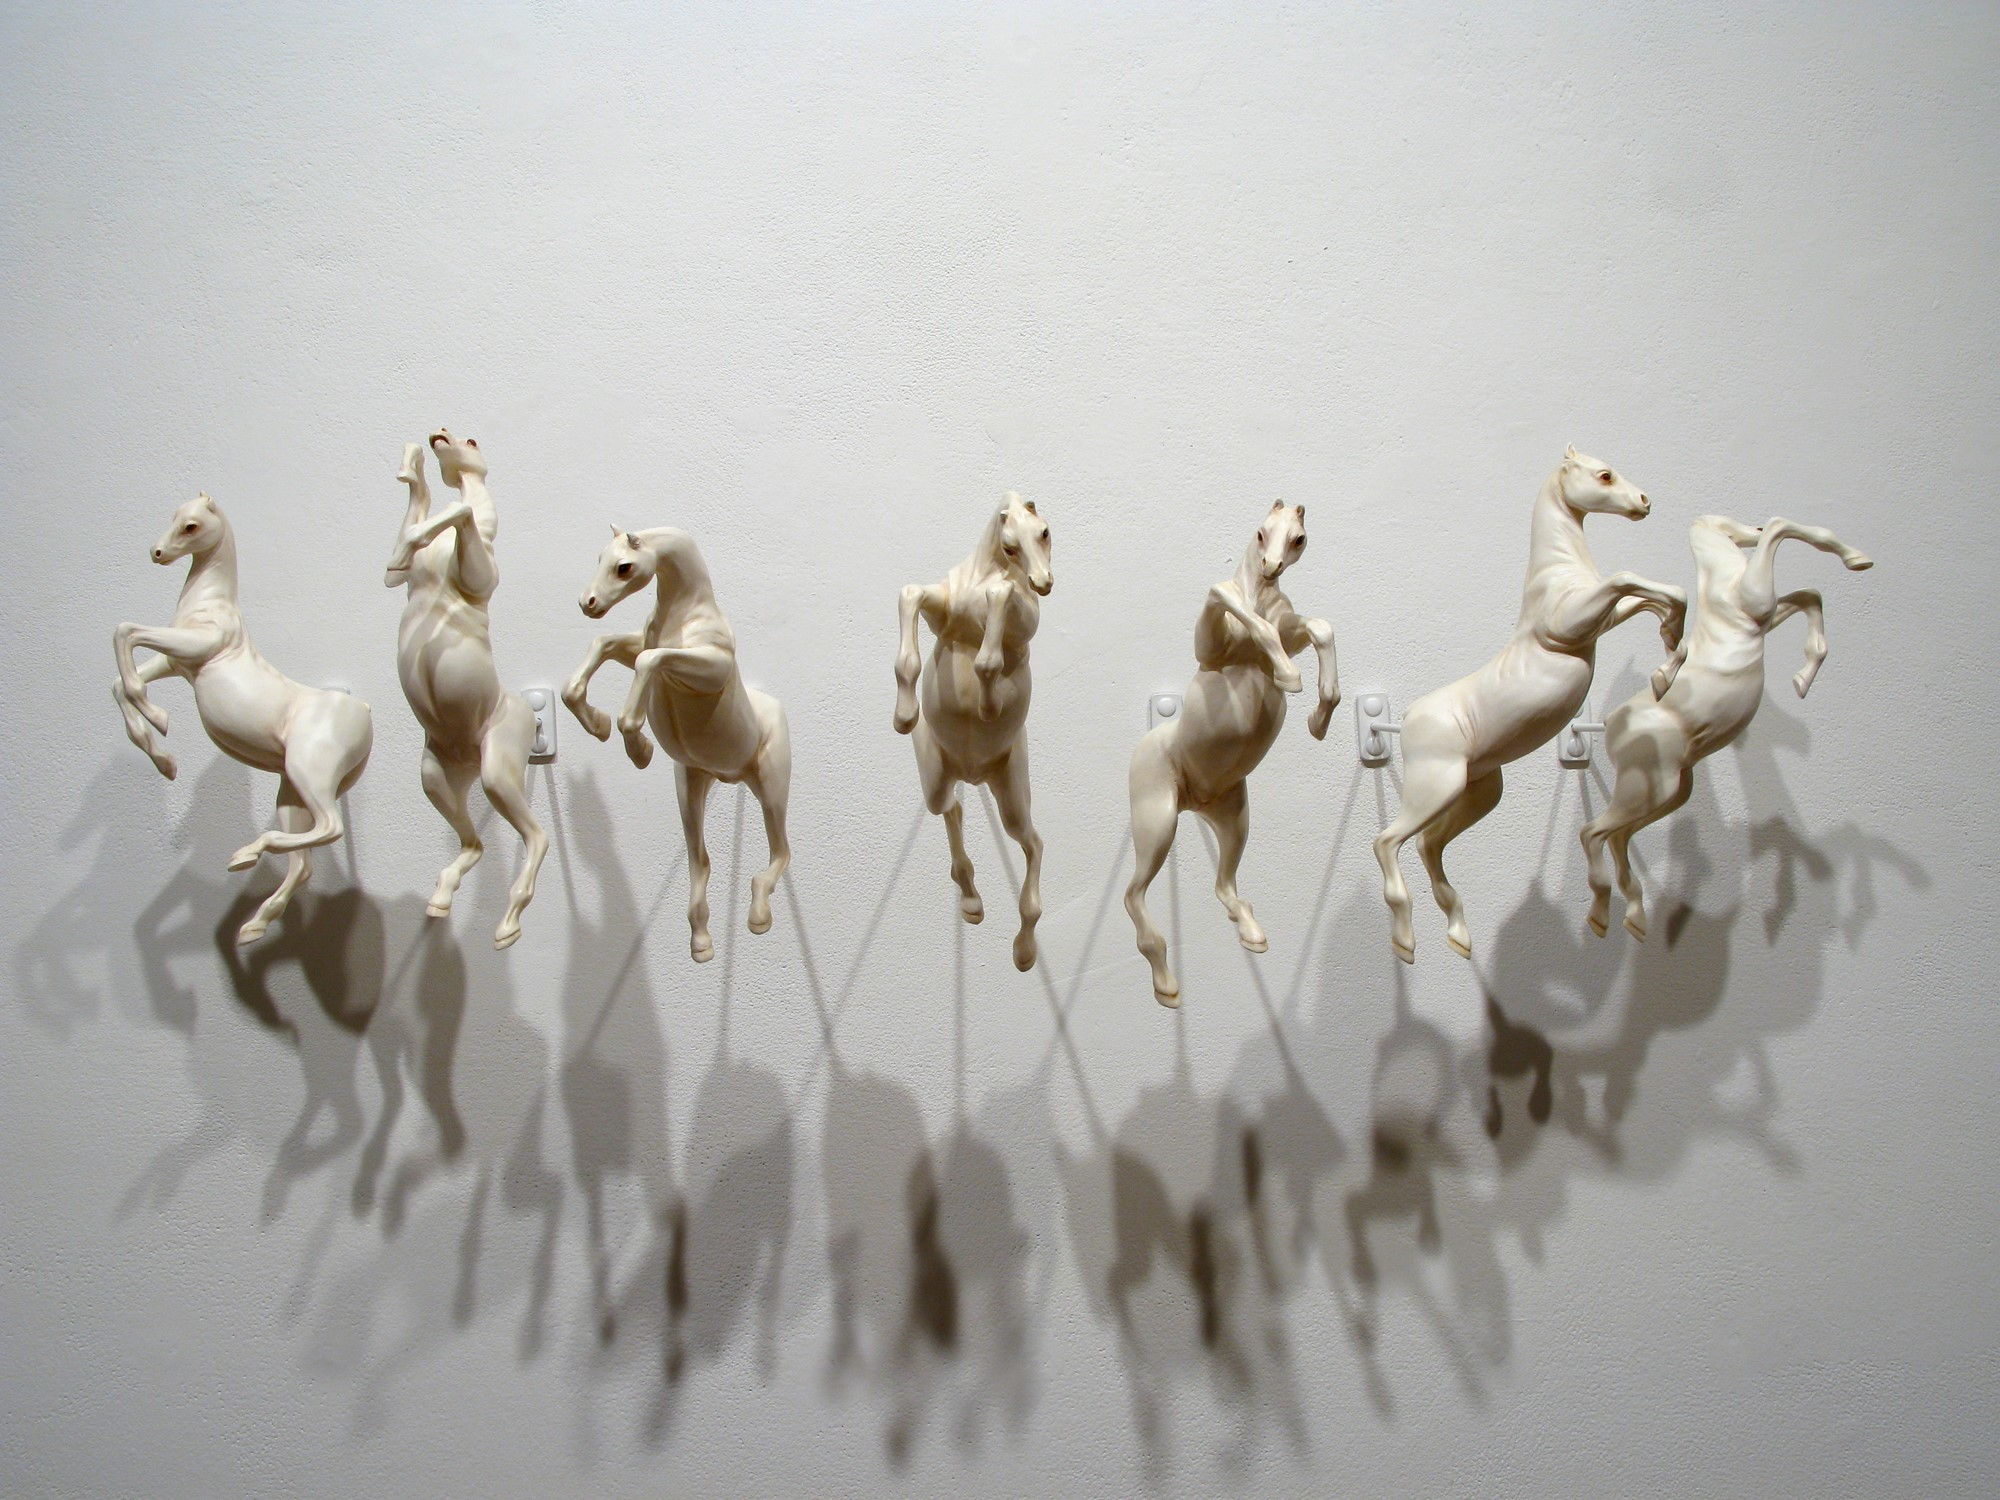 Christy Langer – Sculpture Sevens / Horses